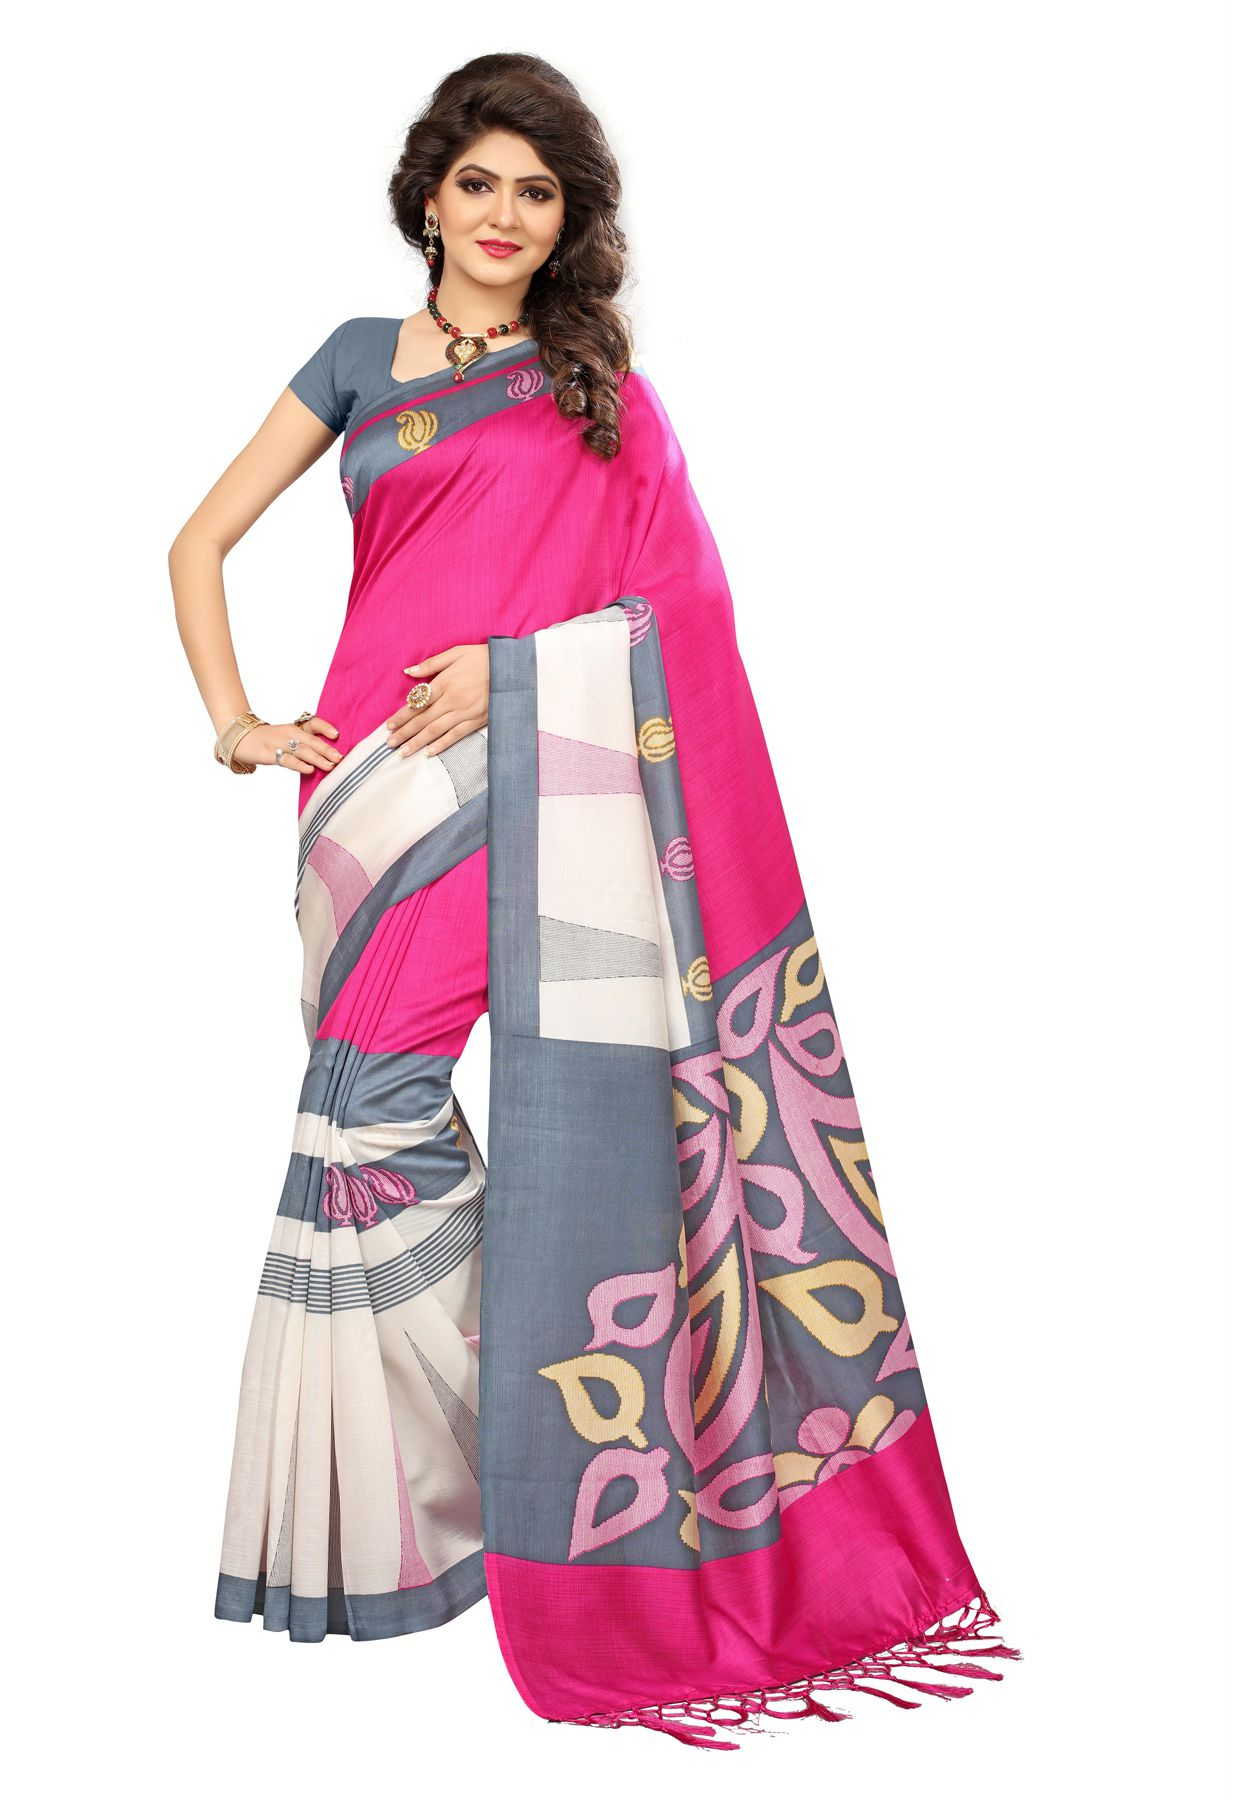 fb6d0c8c134 Salwar Studio Pink Mysore Silk Saree - Buy Salwar Studio Pink Mysore Silk  Saree Online at Low Price - Snapdeal.com